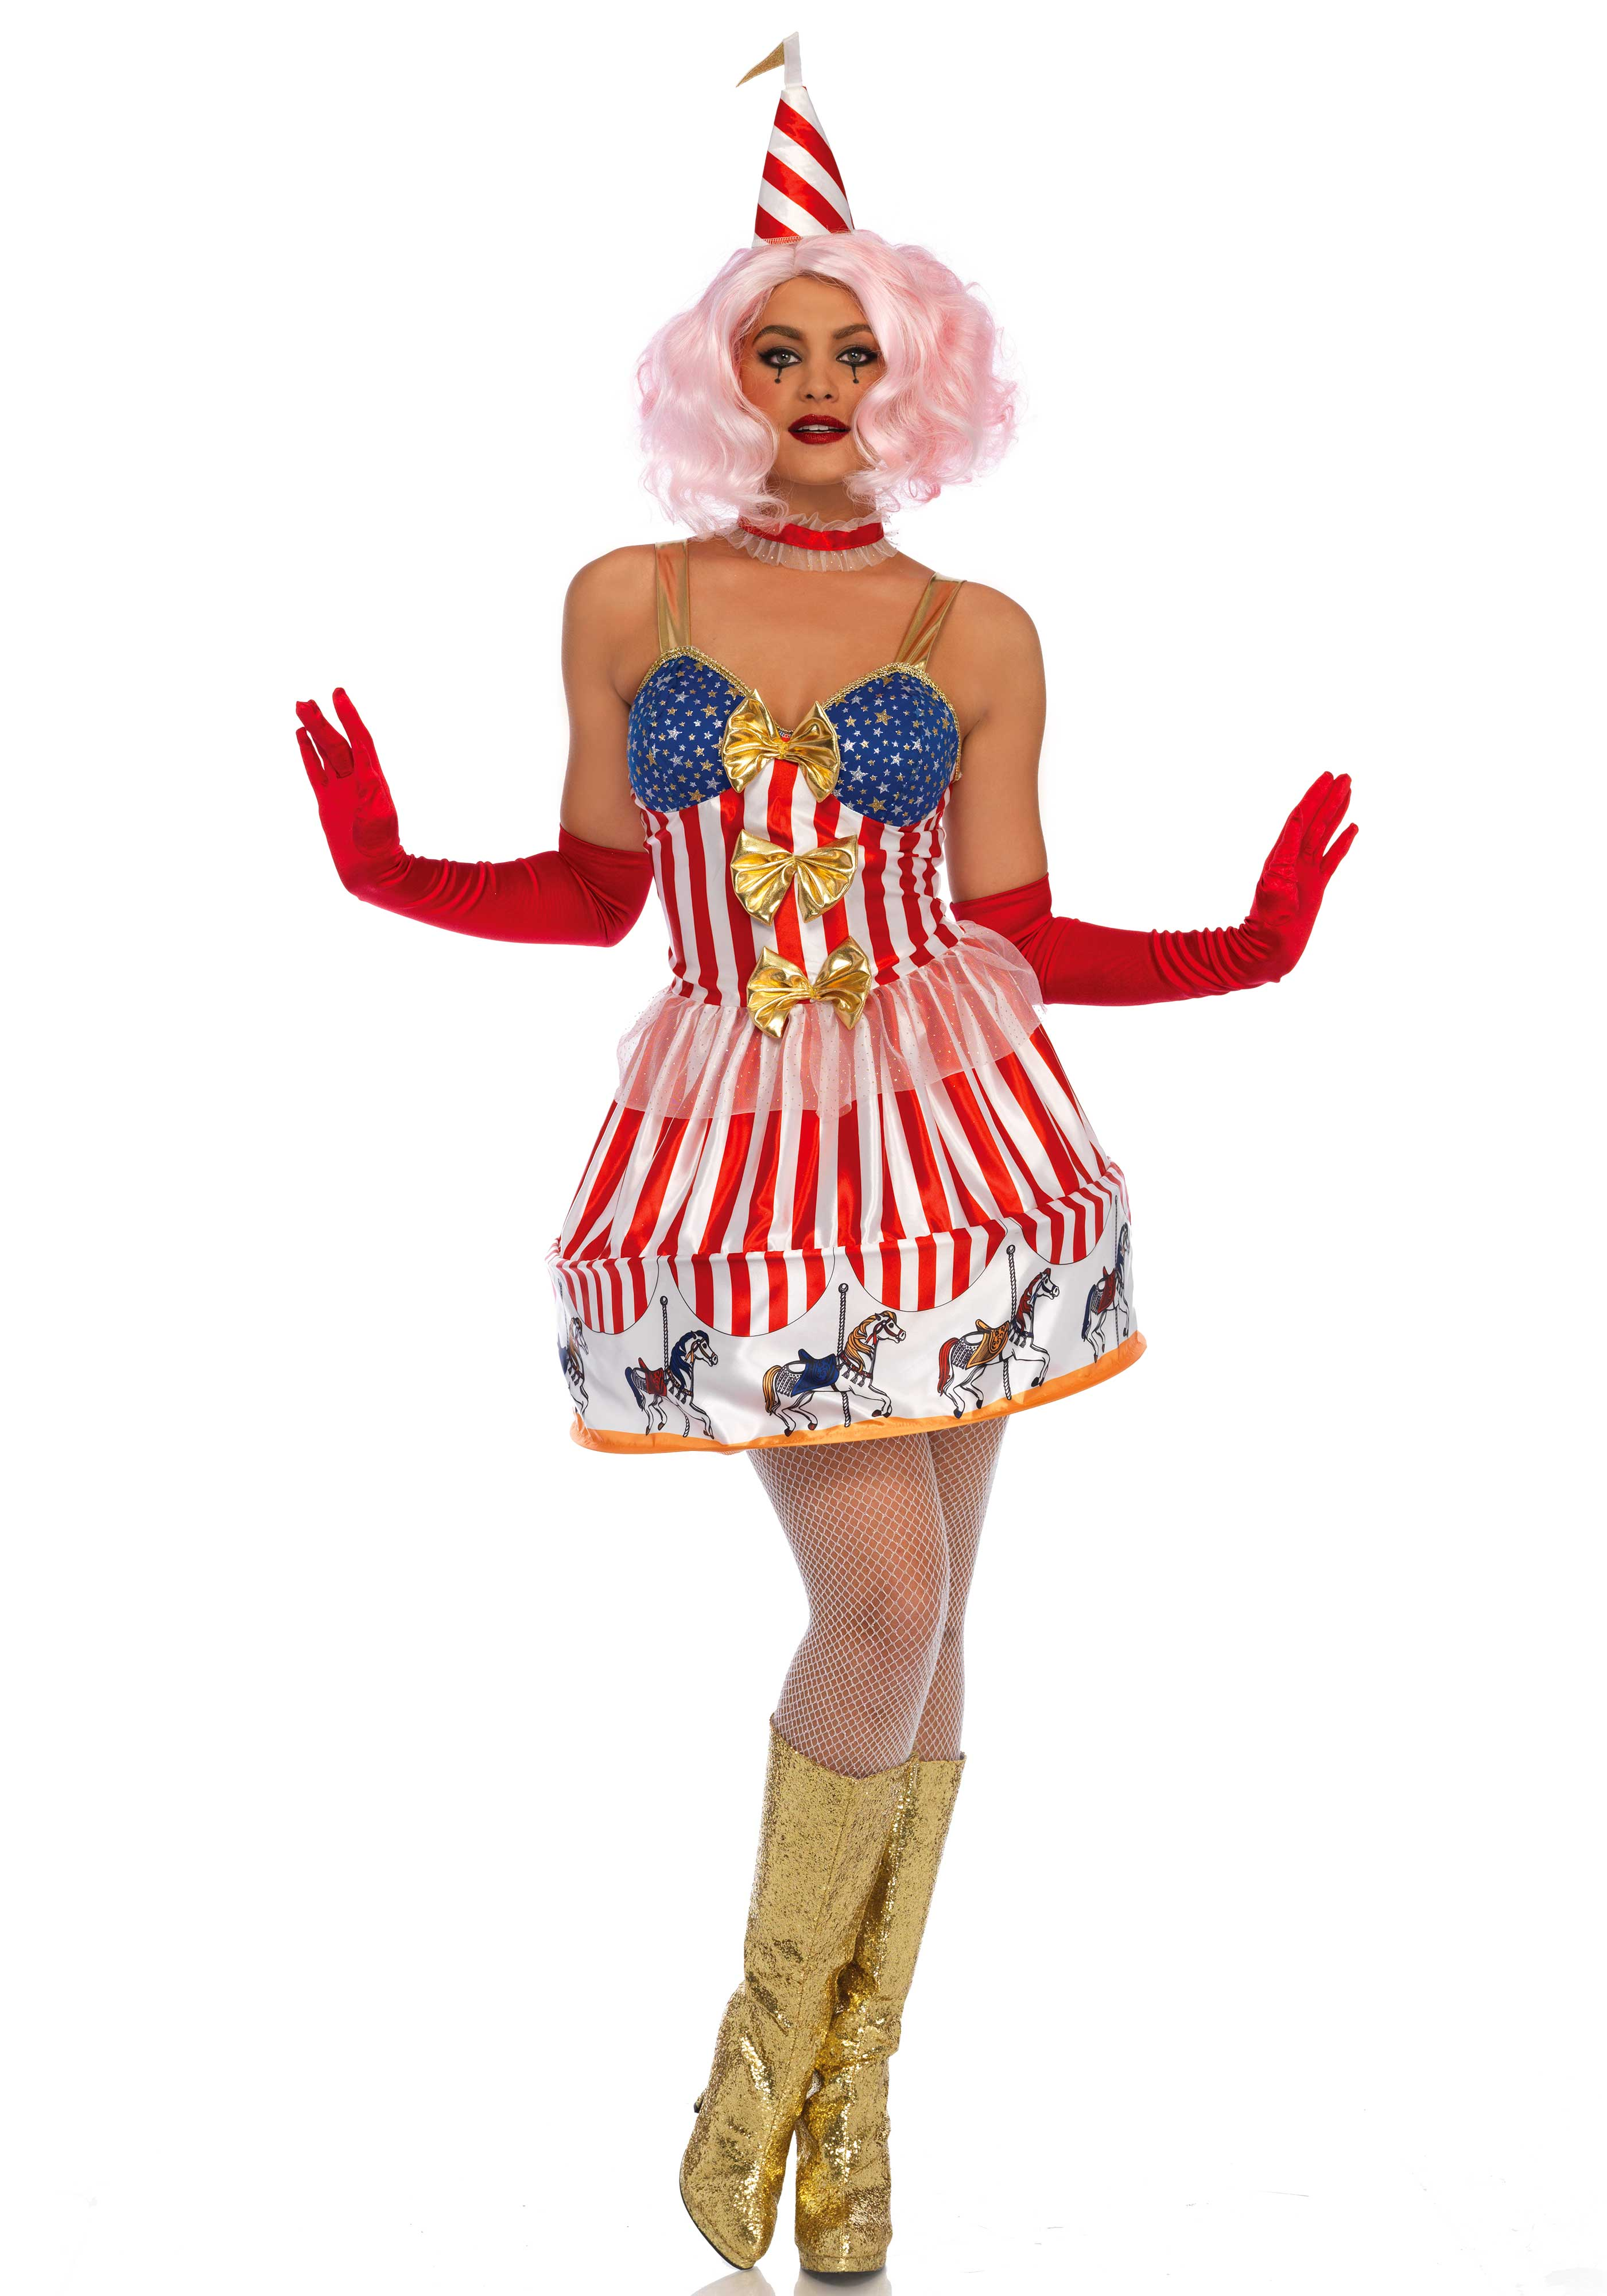 3 PC. Carousel Clown costume, includes a circus themed dress with carousel hoop skirt and golden bows, ribbon choker and matching hat with flag on top.